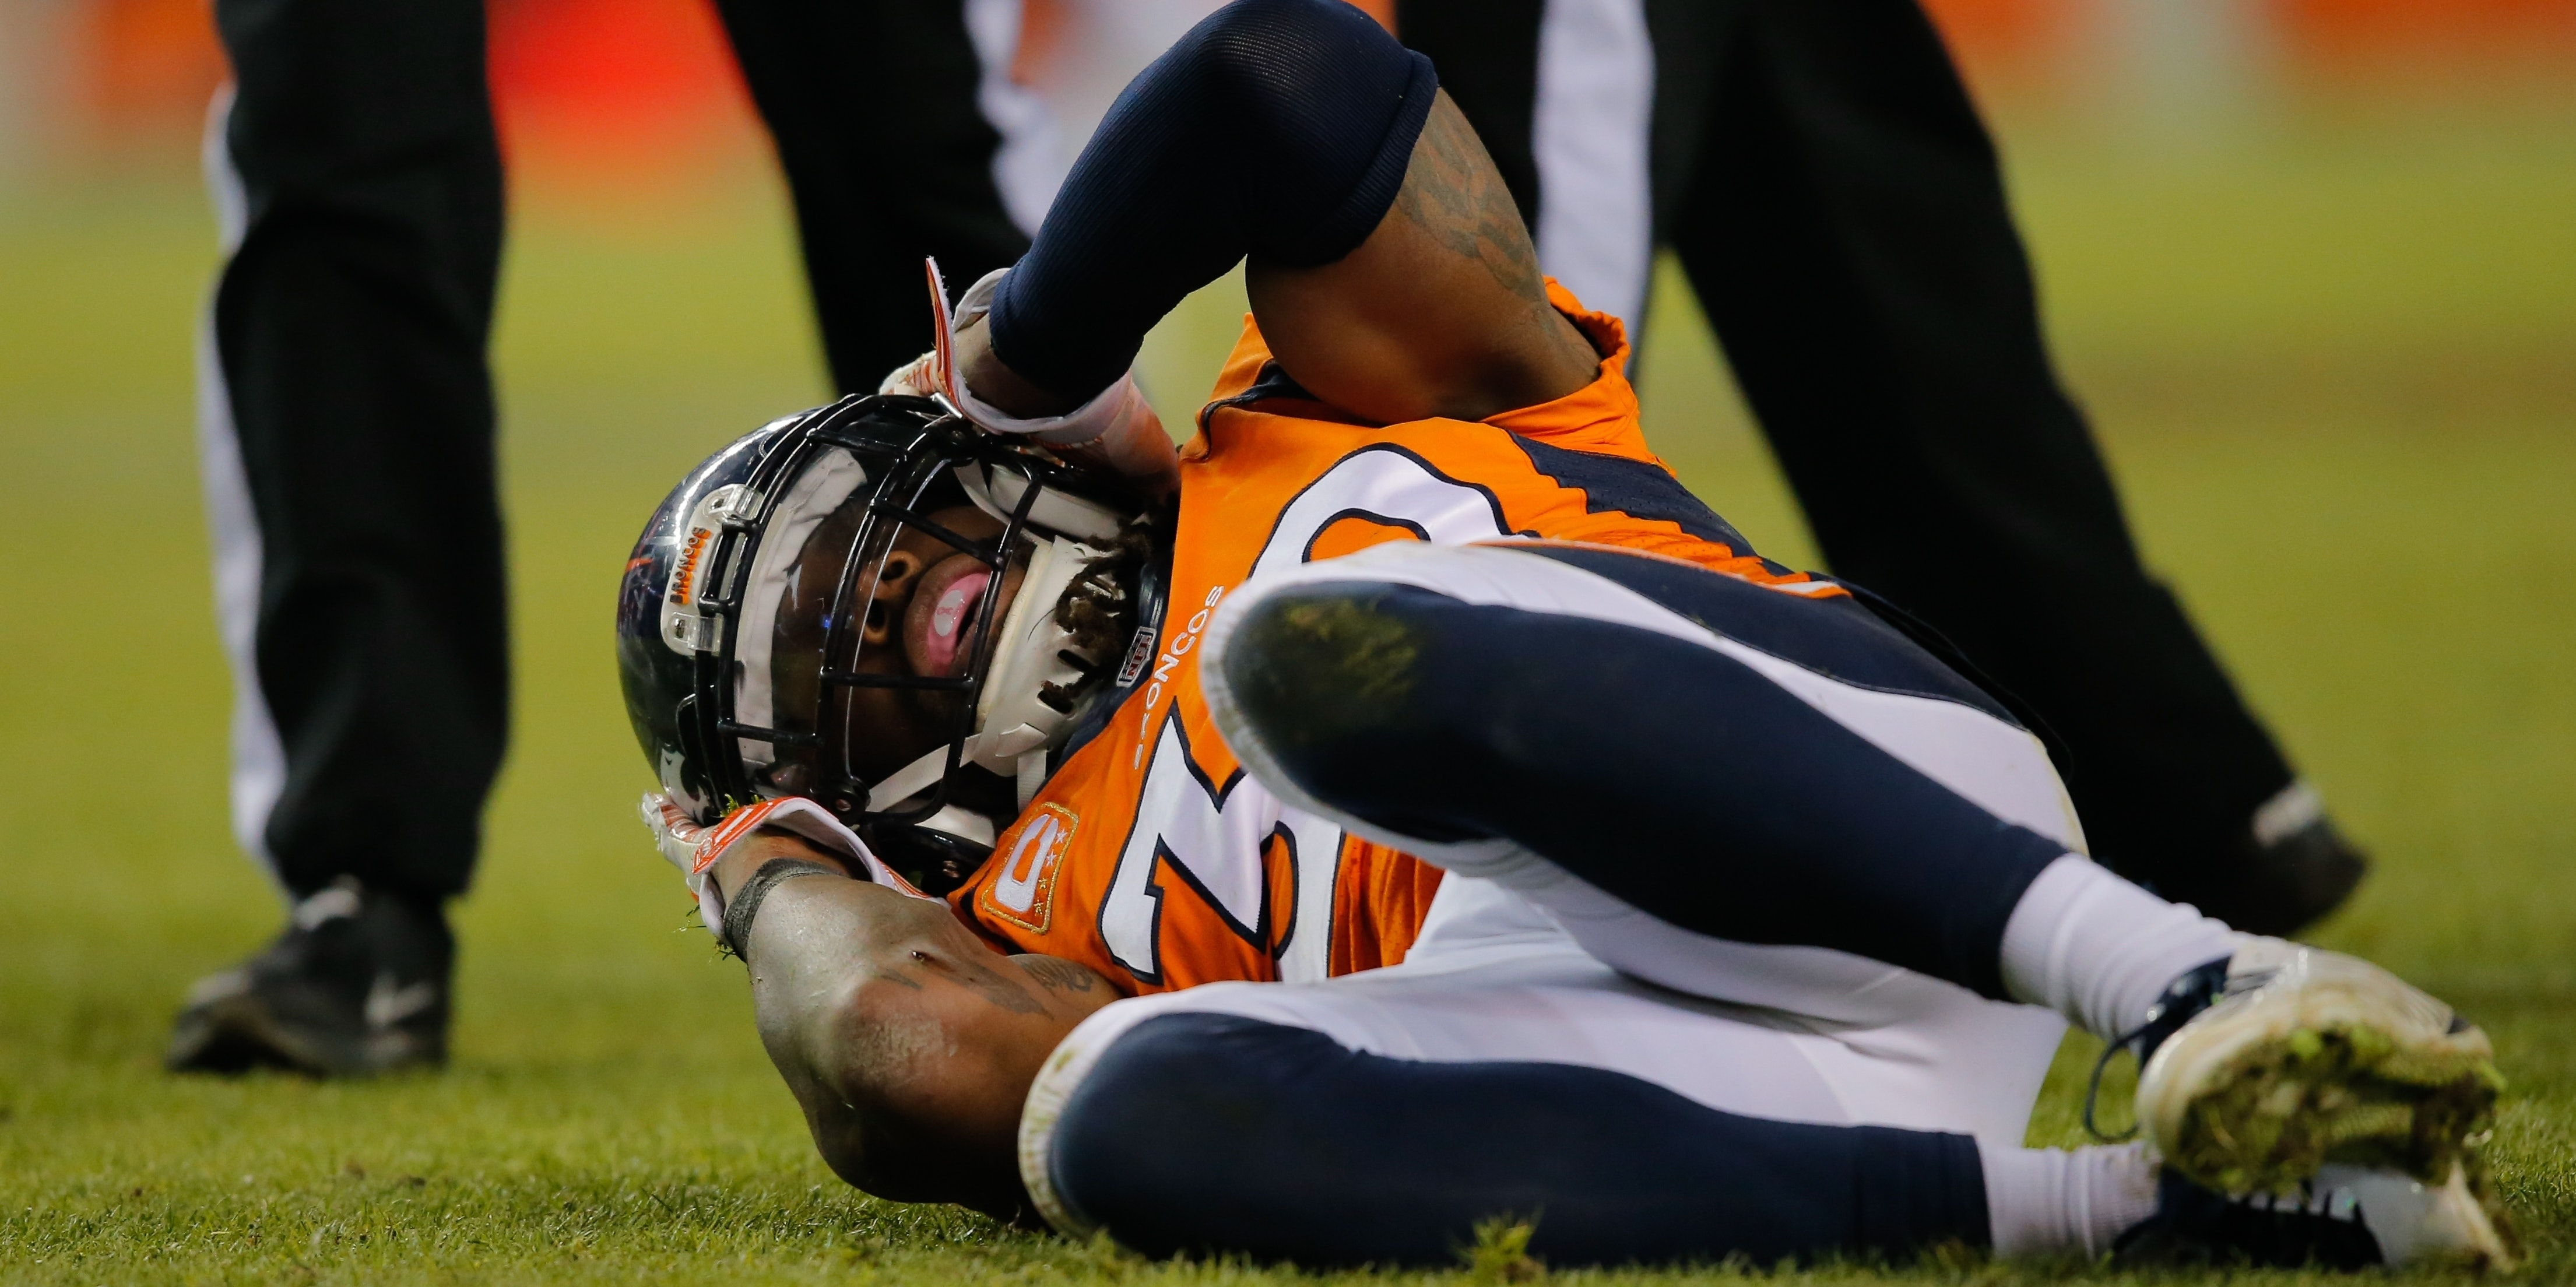 David Bruton of the Denver Broncos suffered a concussion in 2014.